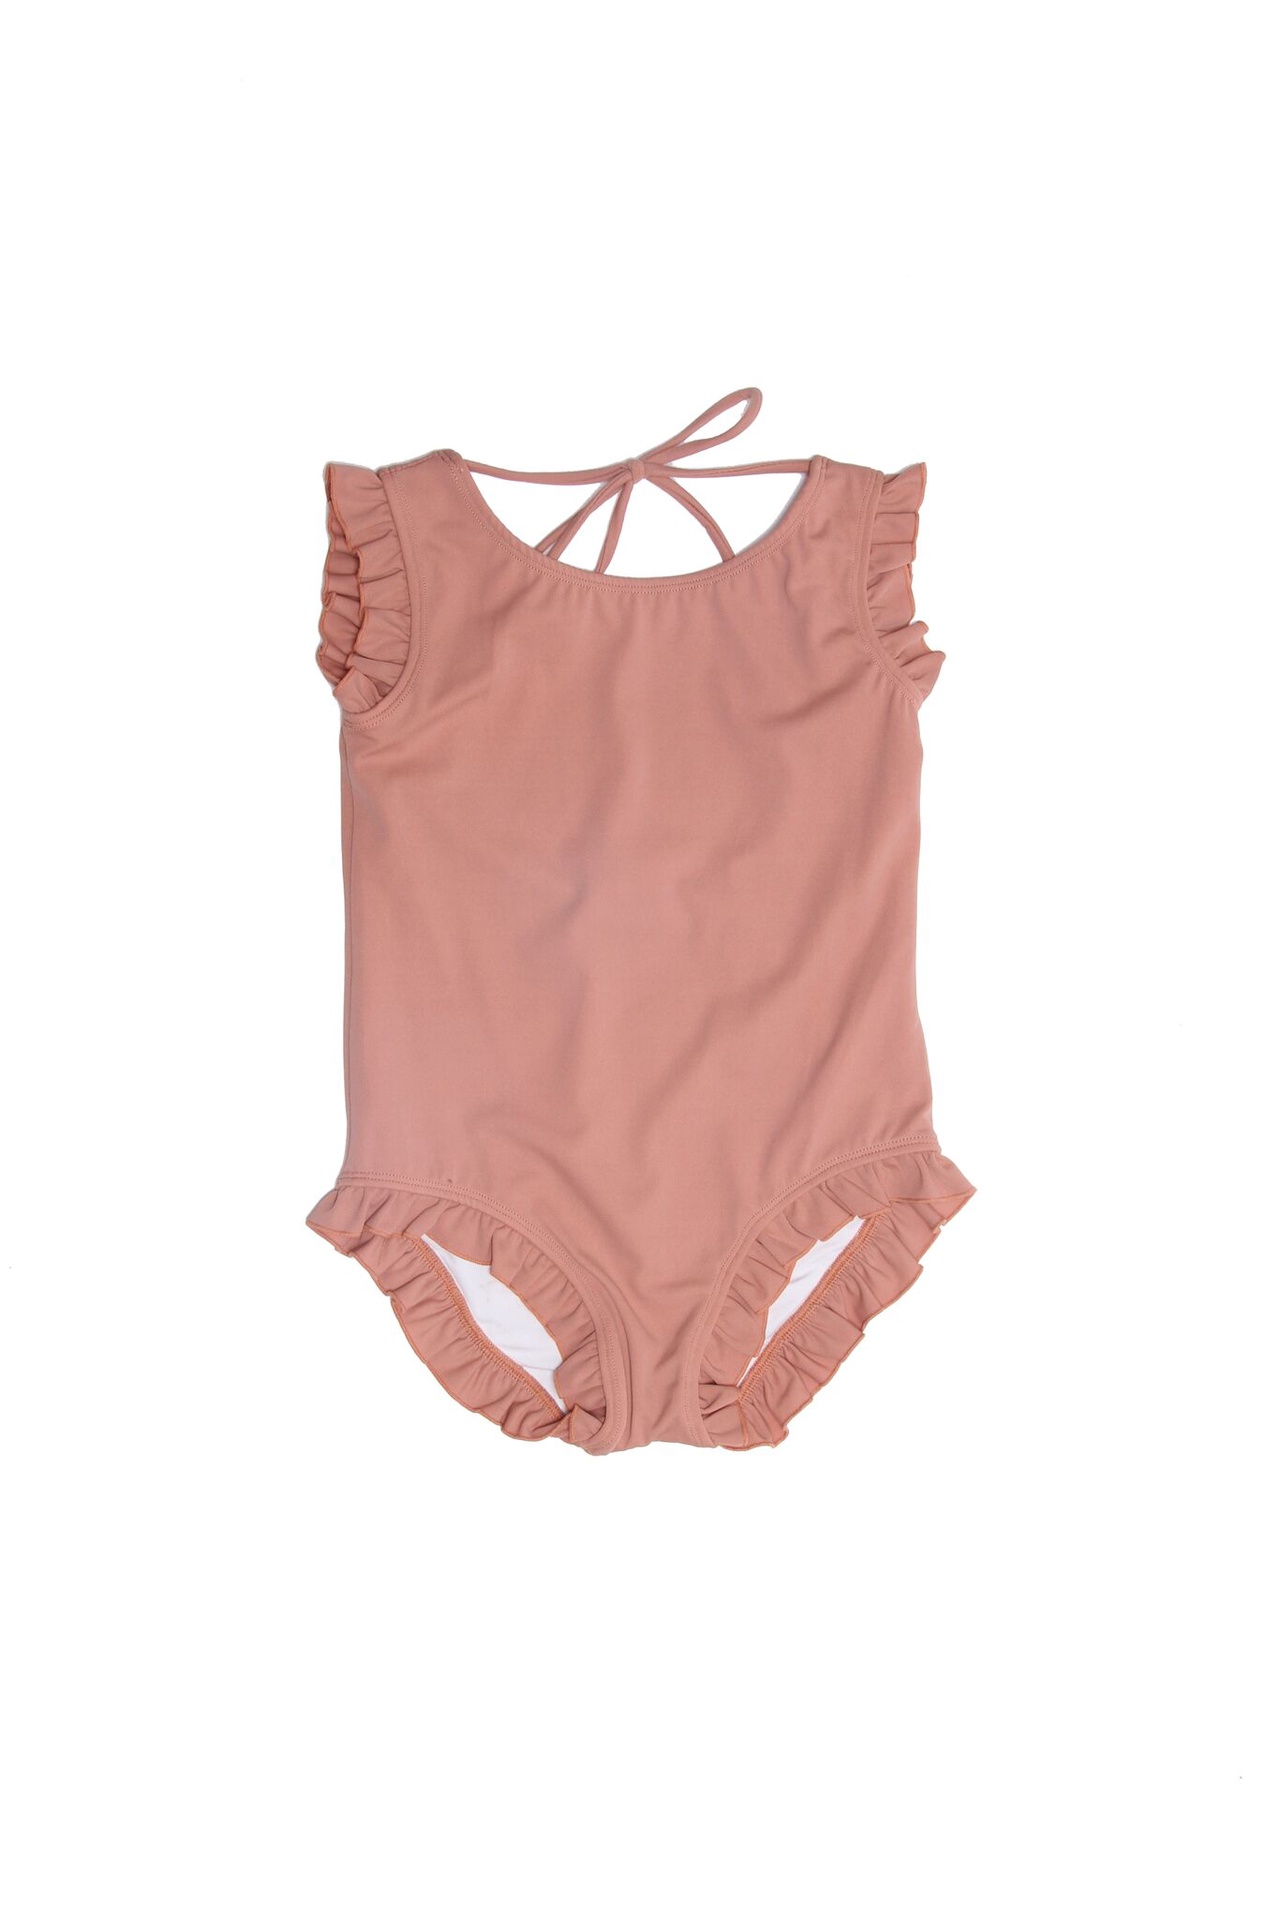 Alex & Ant Darcy Bathers / honey